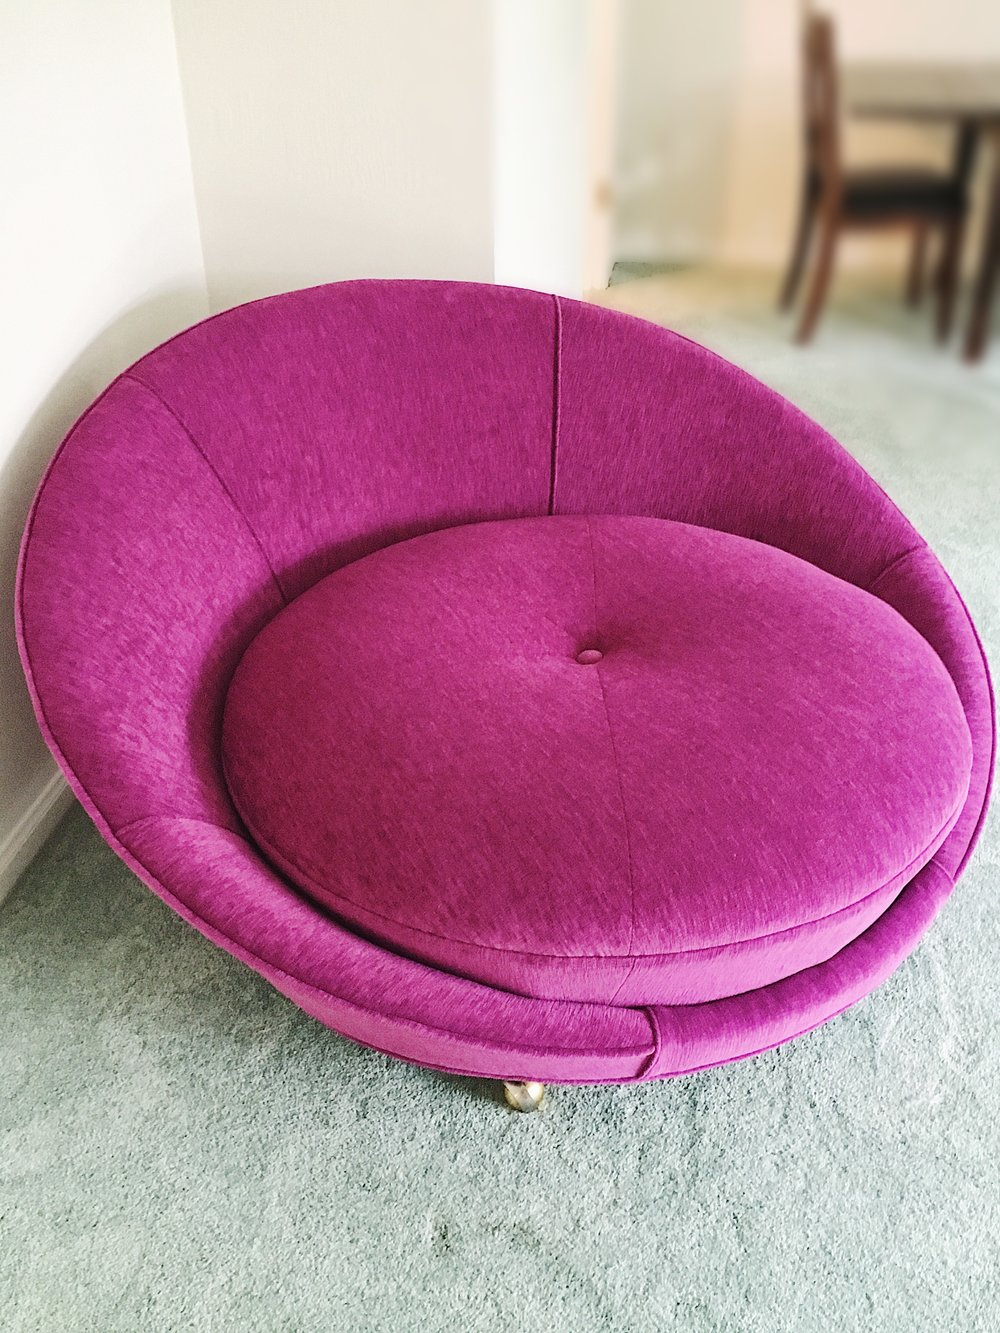 re-upholstered chair & cushion